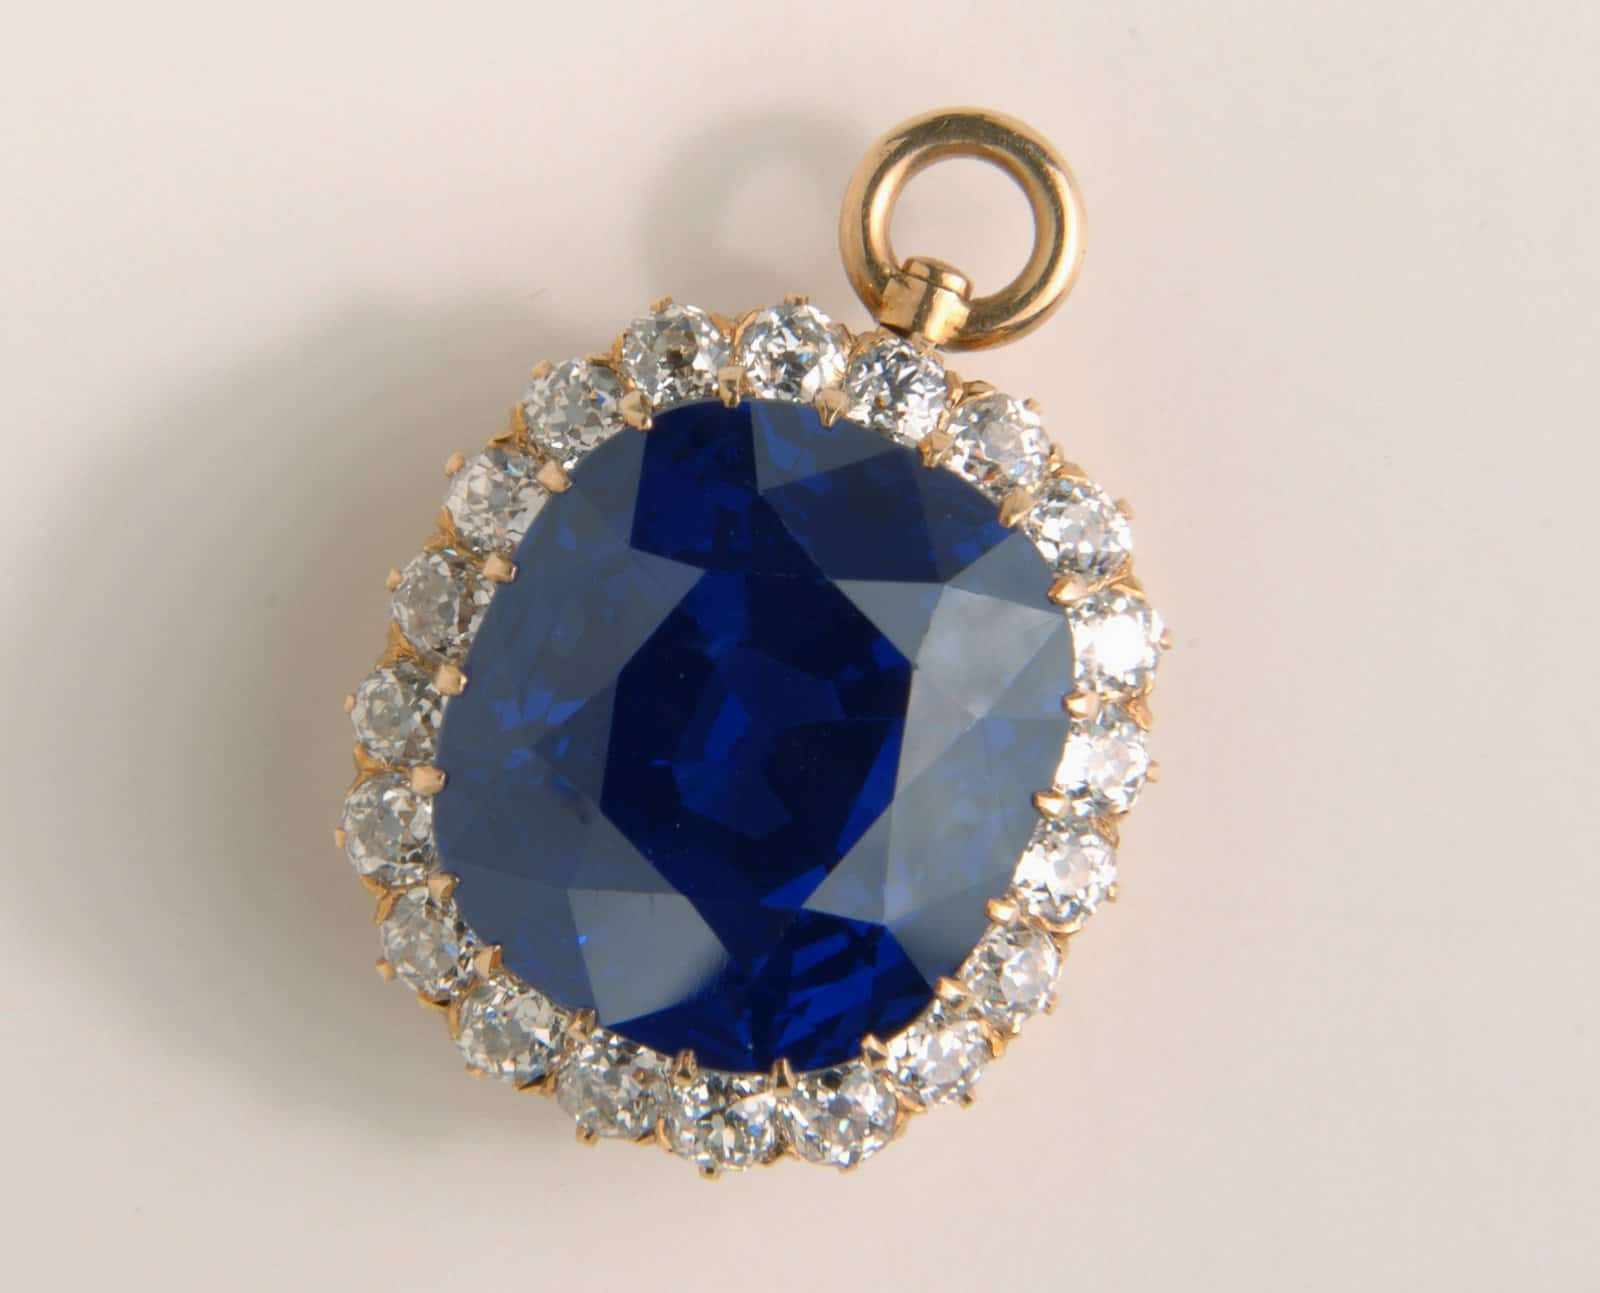 Hill's Sapphire,The Most Expensive Sapphire In The World